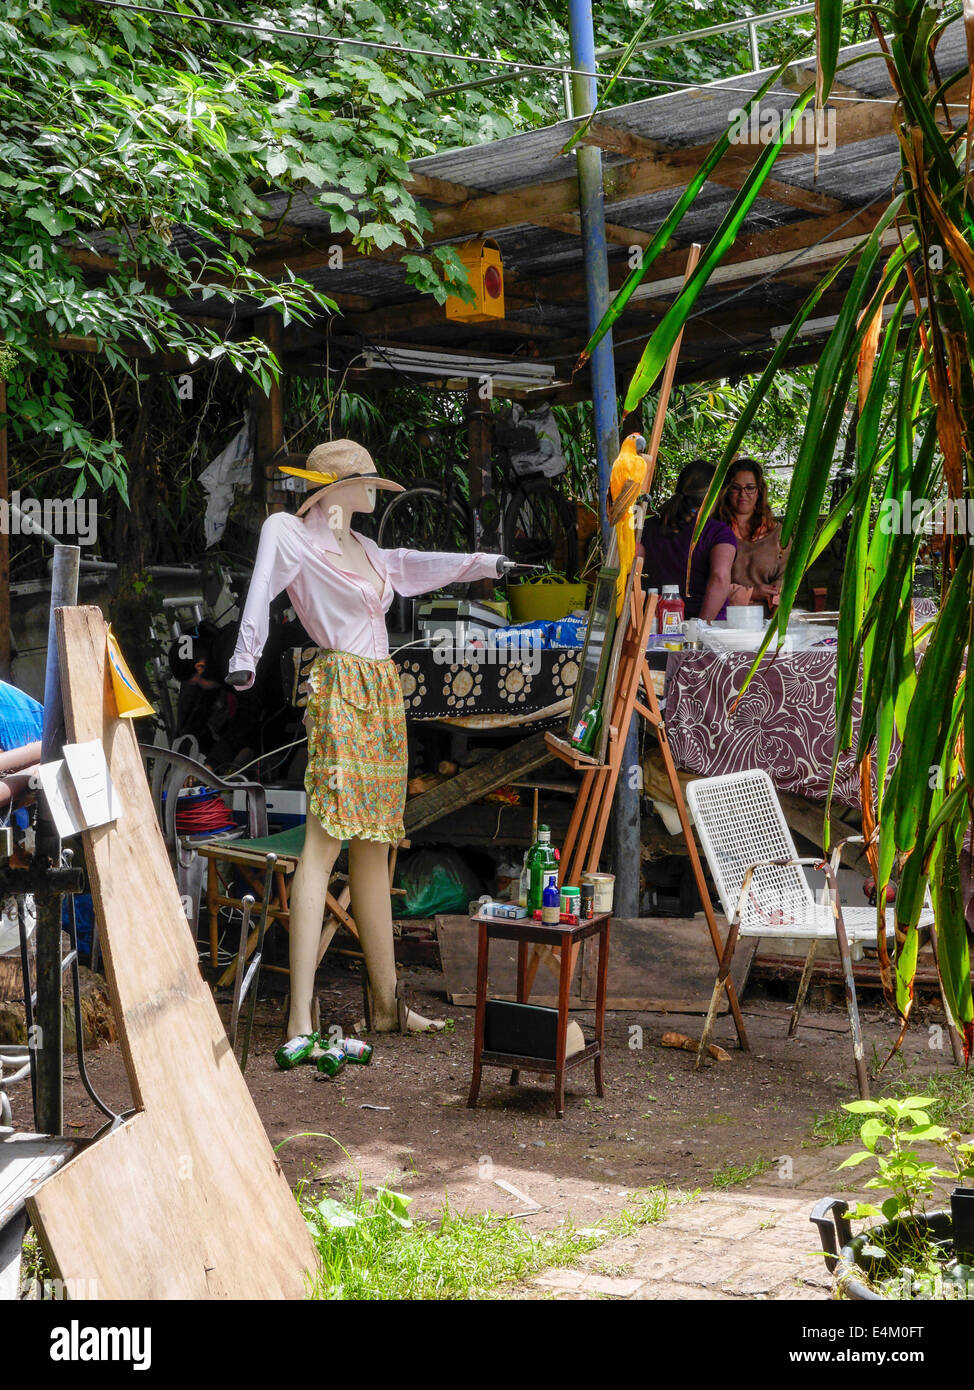 Mannequin and stuffed parrot welcoming visitors to the  artists' Open Studio  day on eel Pie Island - Stock Image